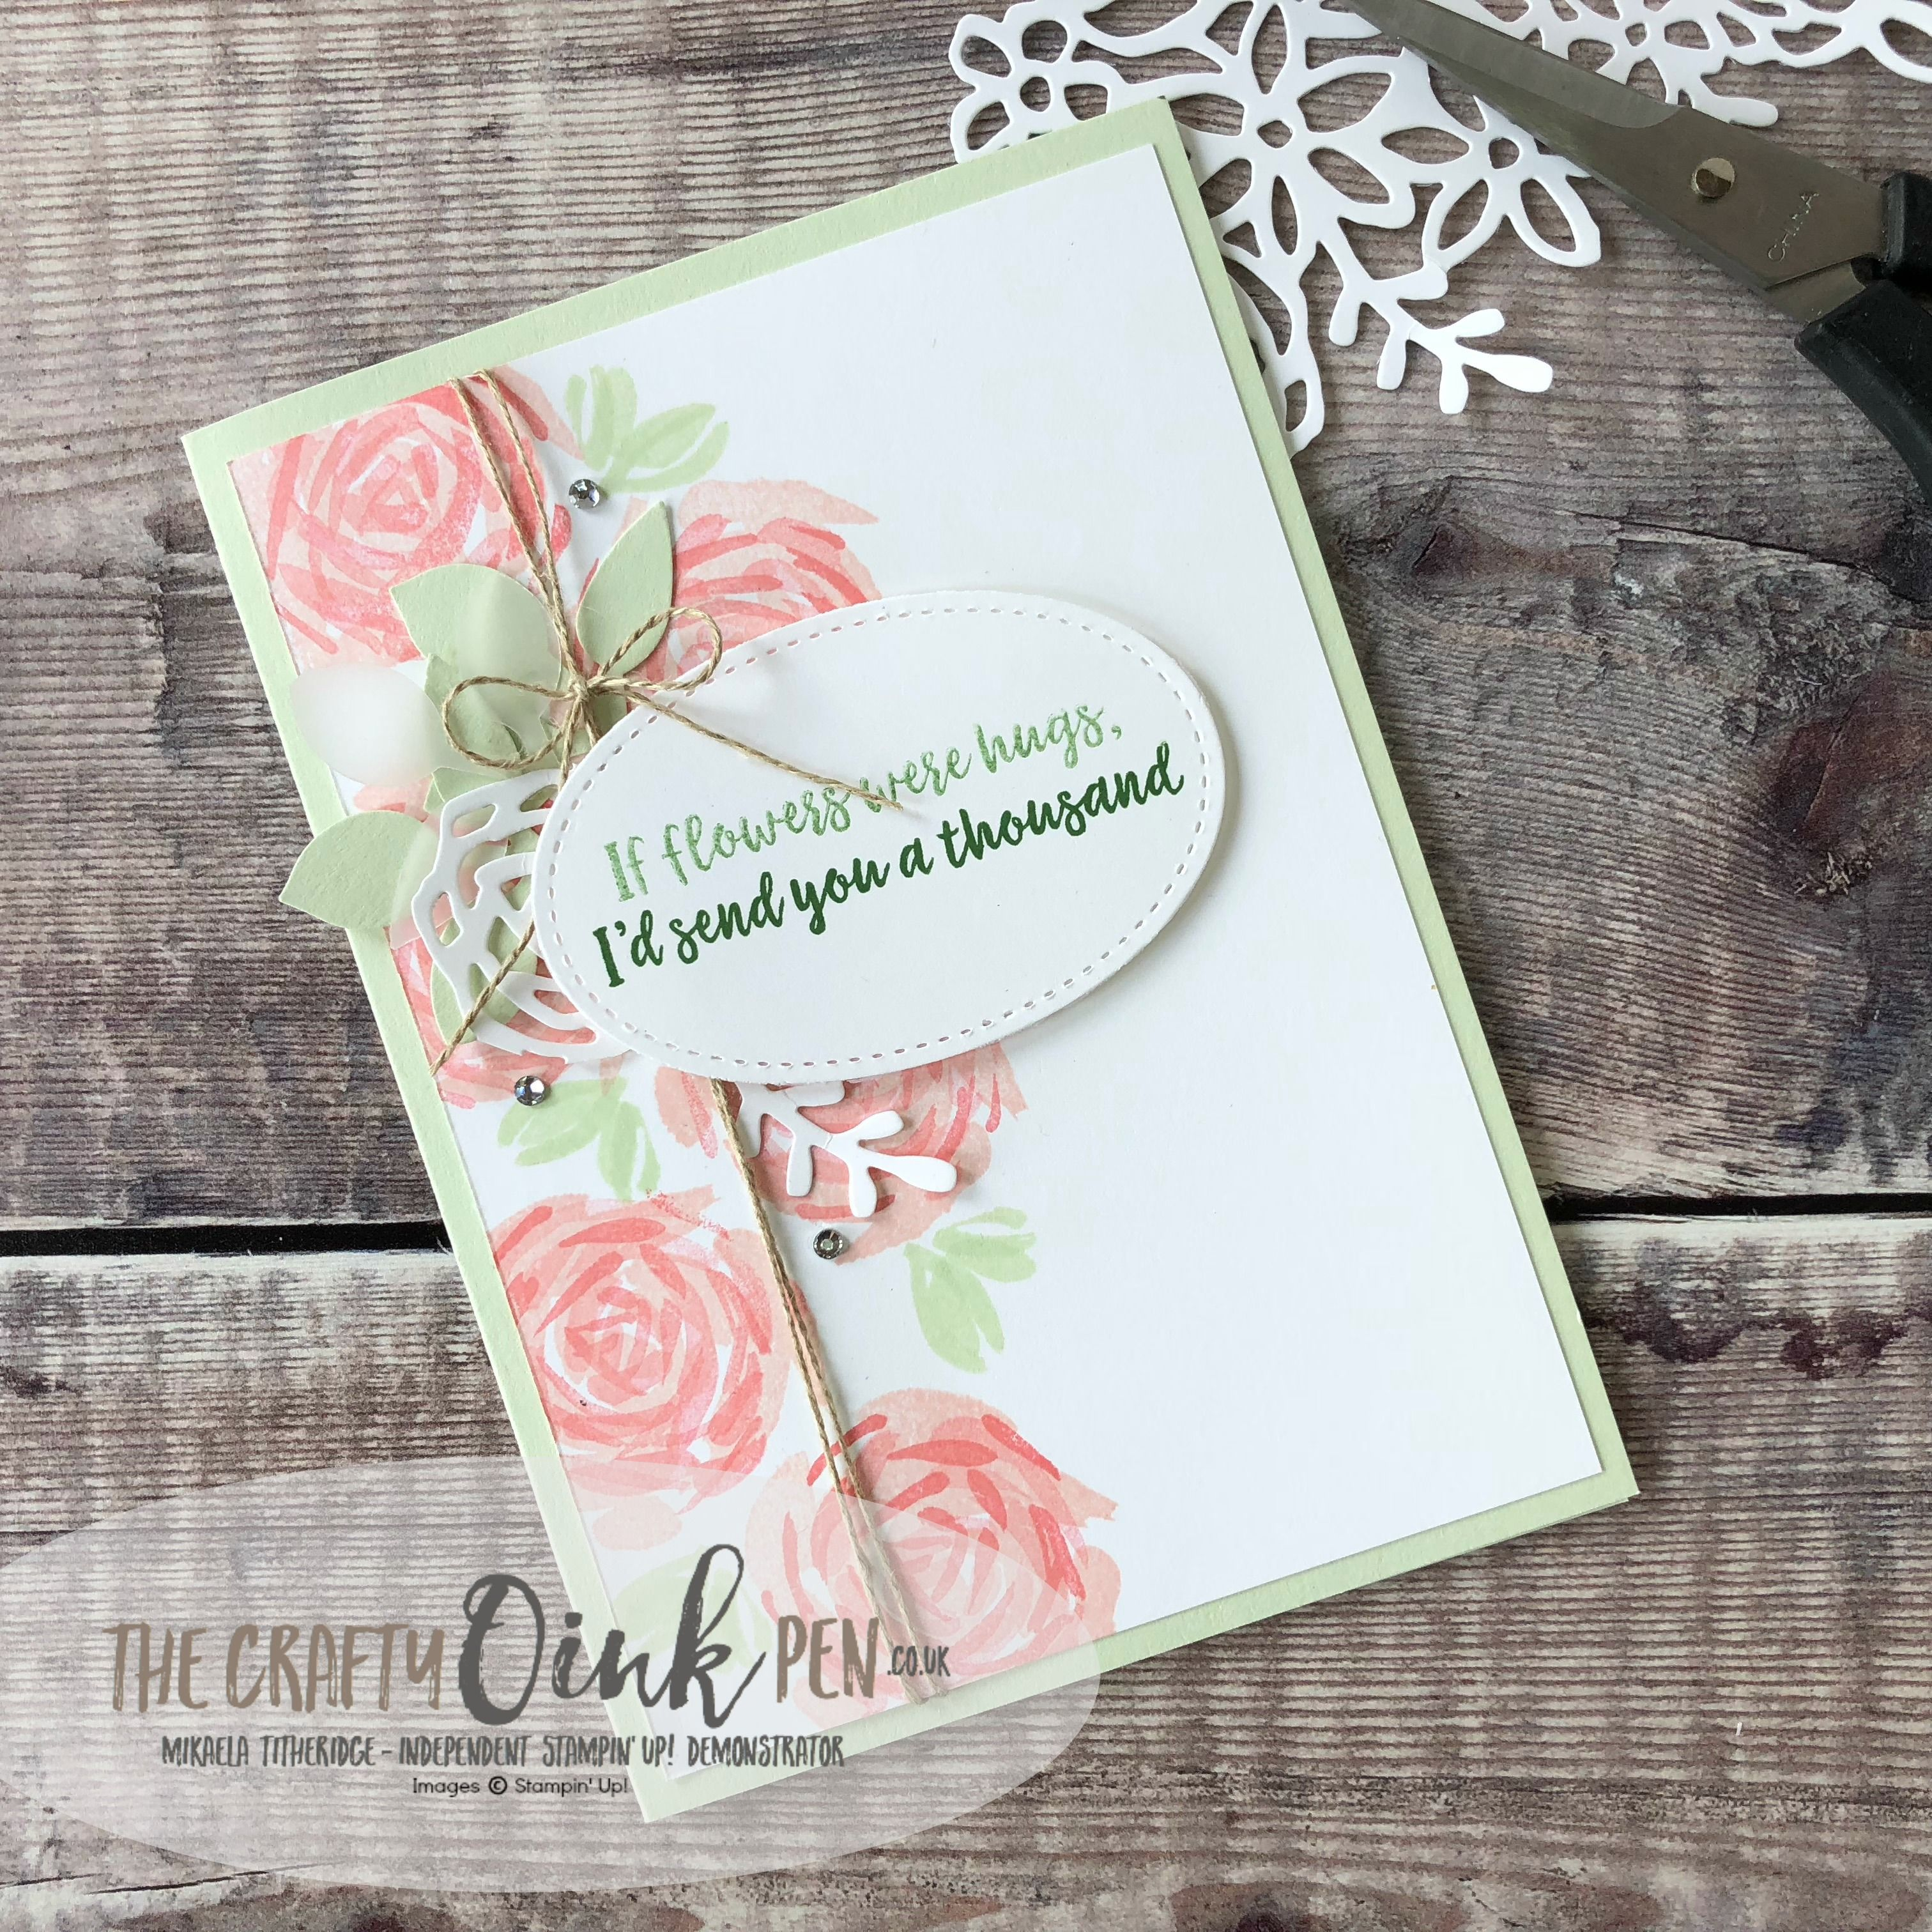 Abstract Impressions Card By Mikaela Titheridge, #6Uk Independent Stampin Up